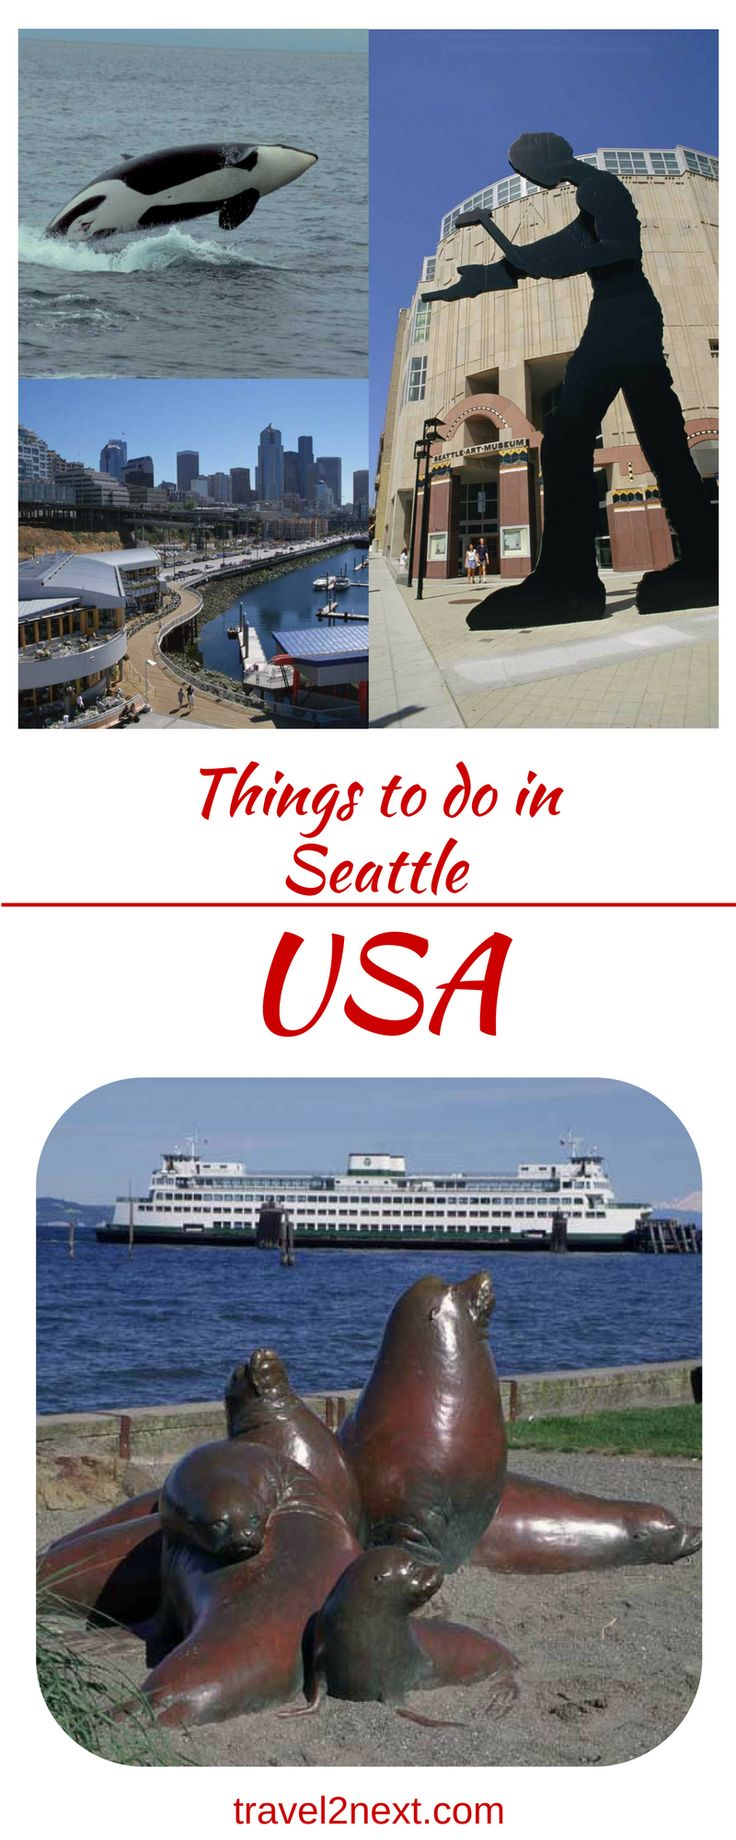 Things to do in Seattle. Starbucks coffee, Boeing jets, Microsoft millionaires, flying fish and underground tours are some of the things that will keep you sleepless Seattle!